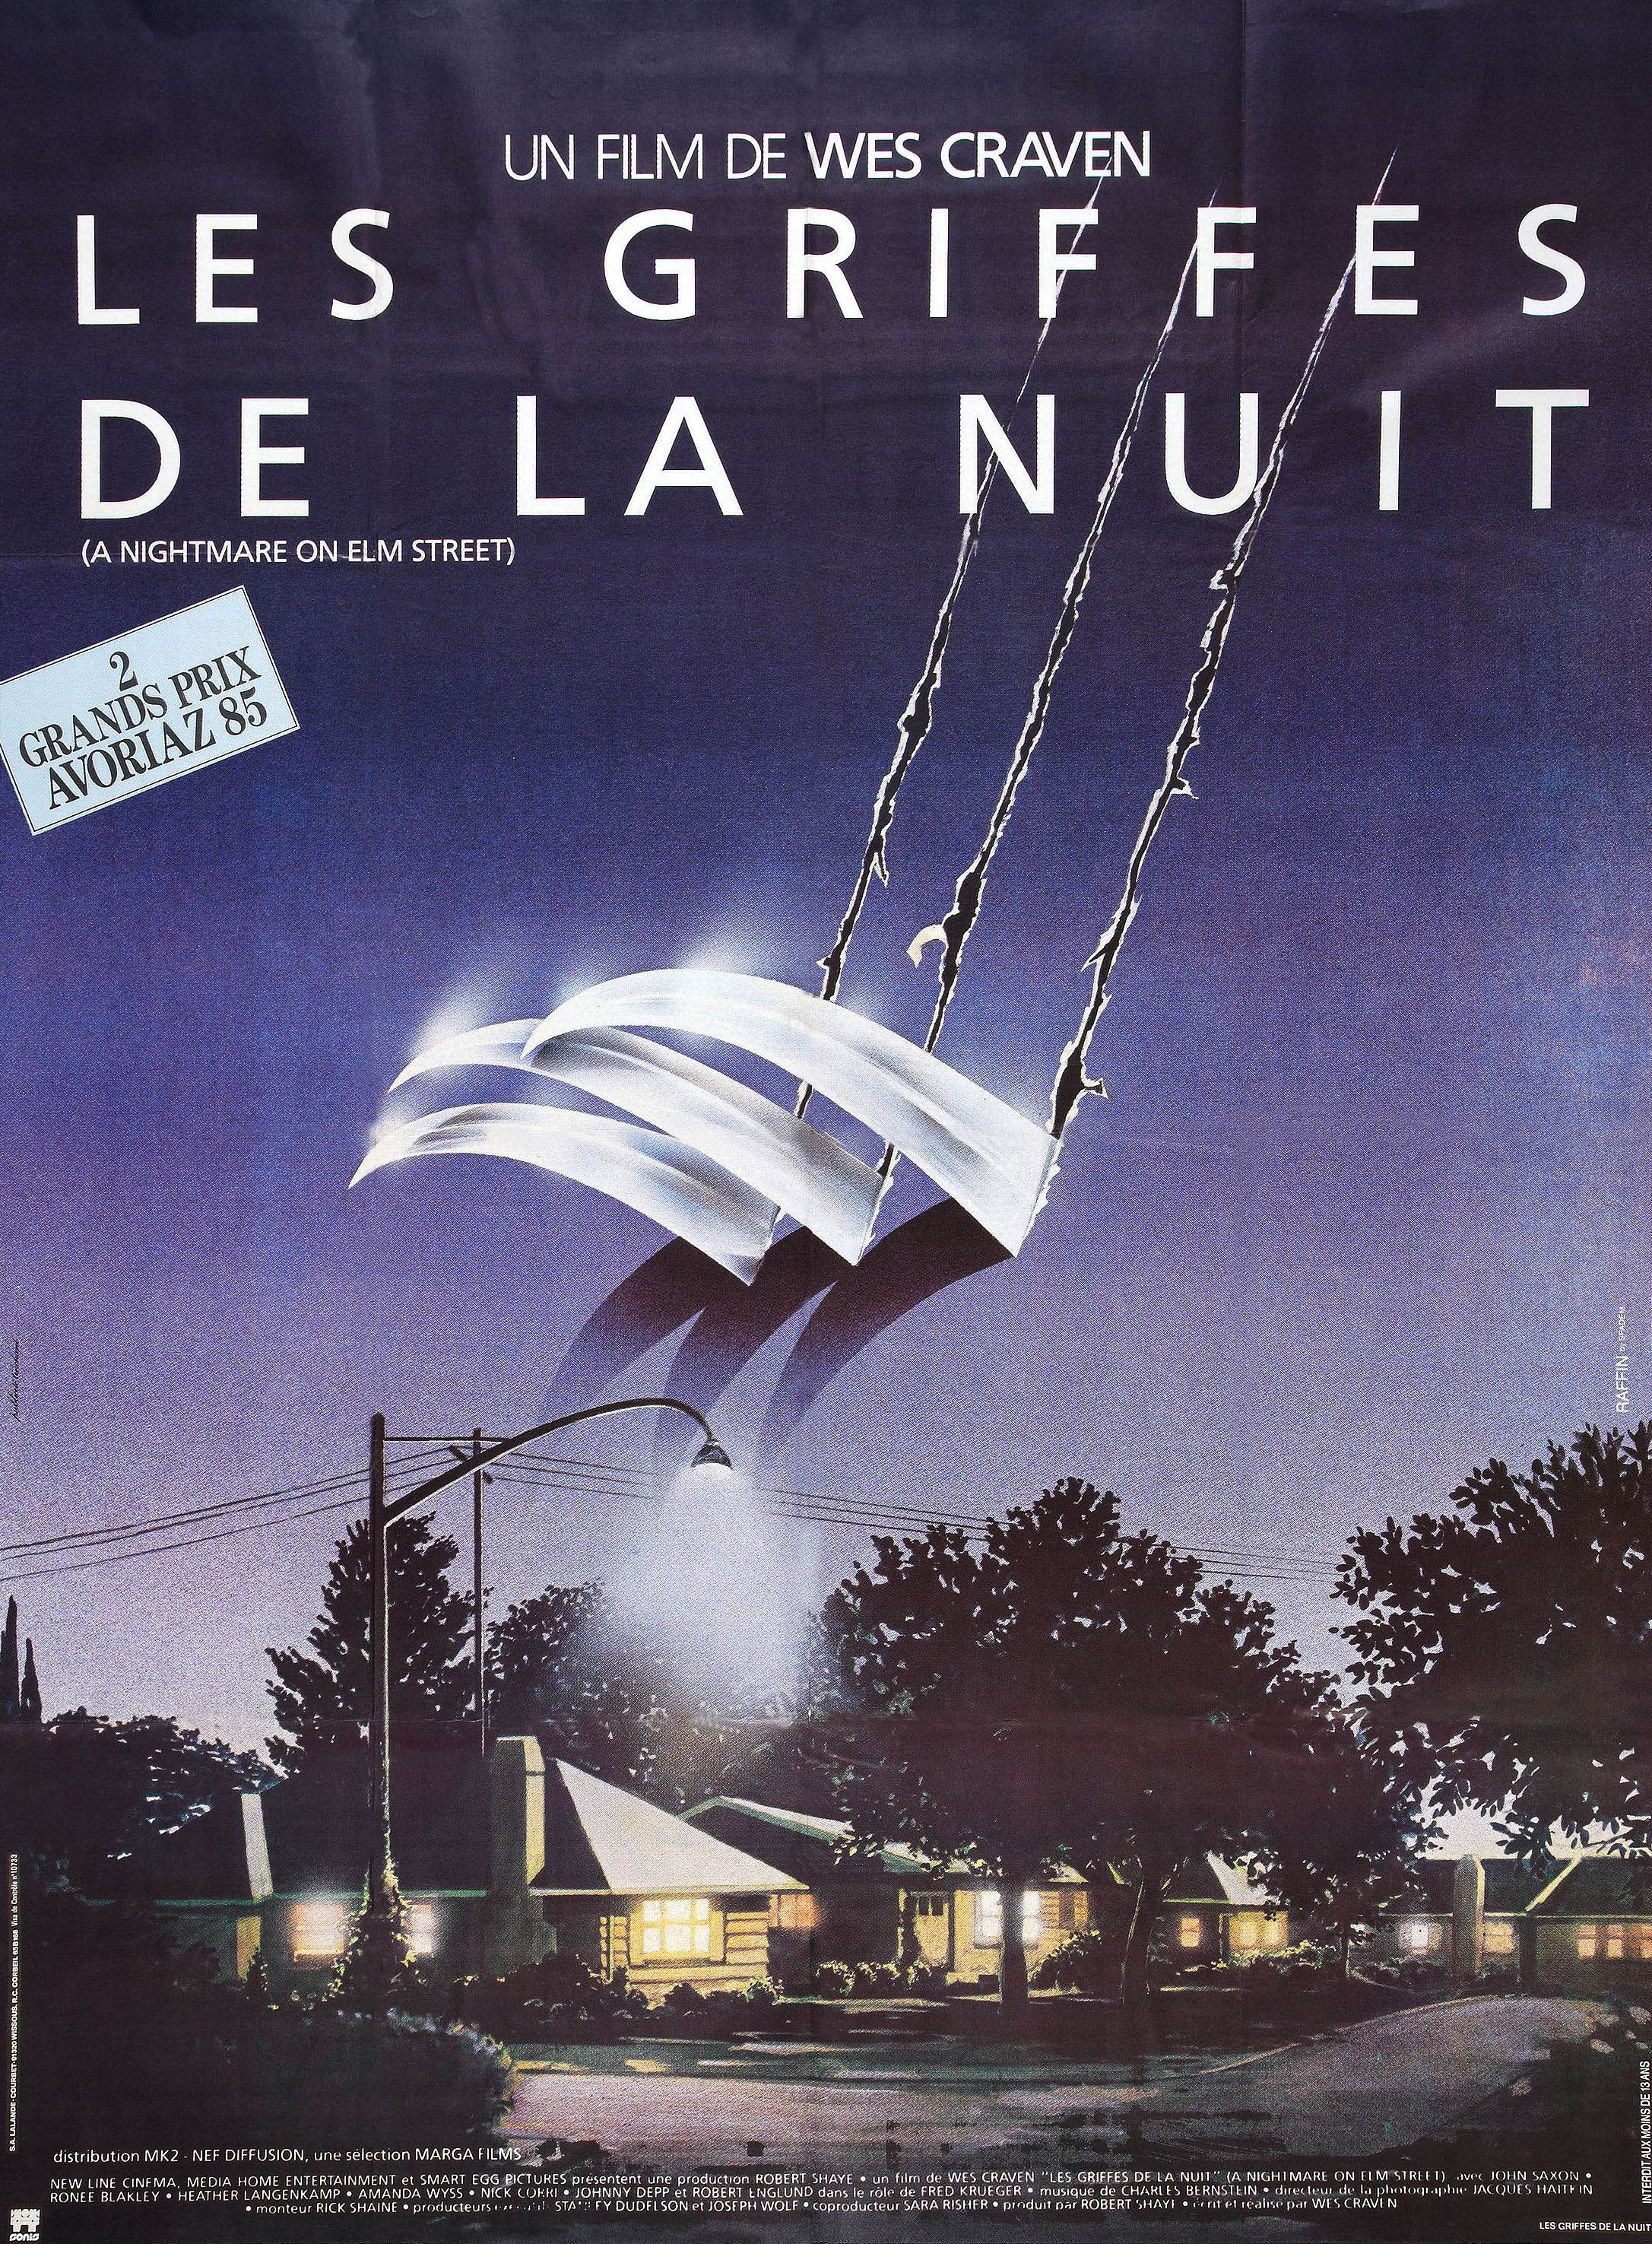 A Nightmare On Elm Street French poster